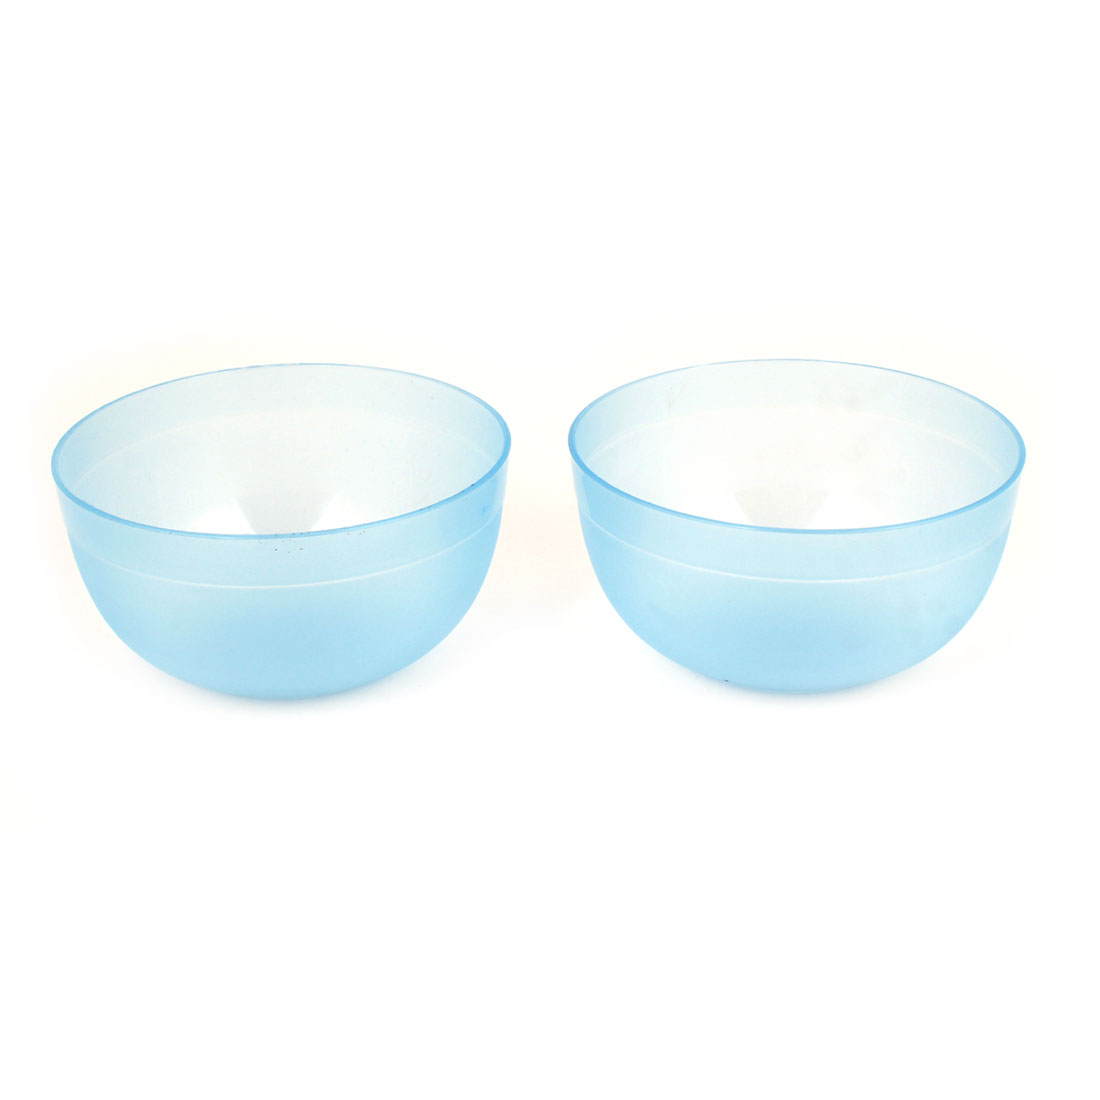 Lady Beauty Tool Clear Blue Plastic 9cm Dia Mask Mixing Bowl 2 Pcs